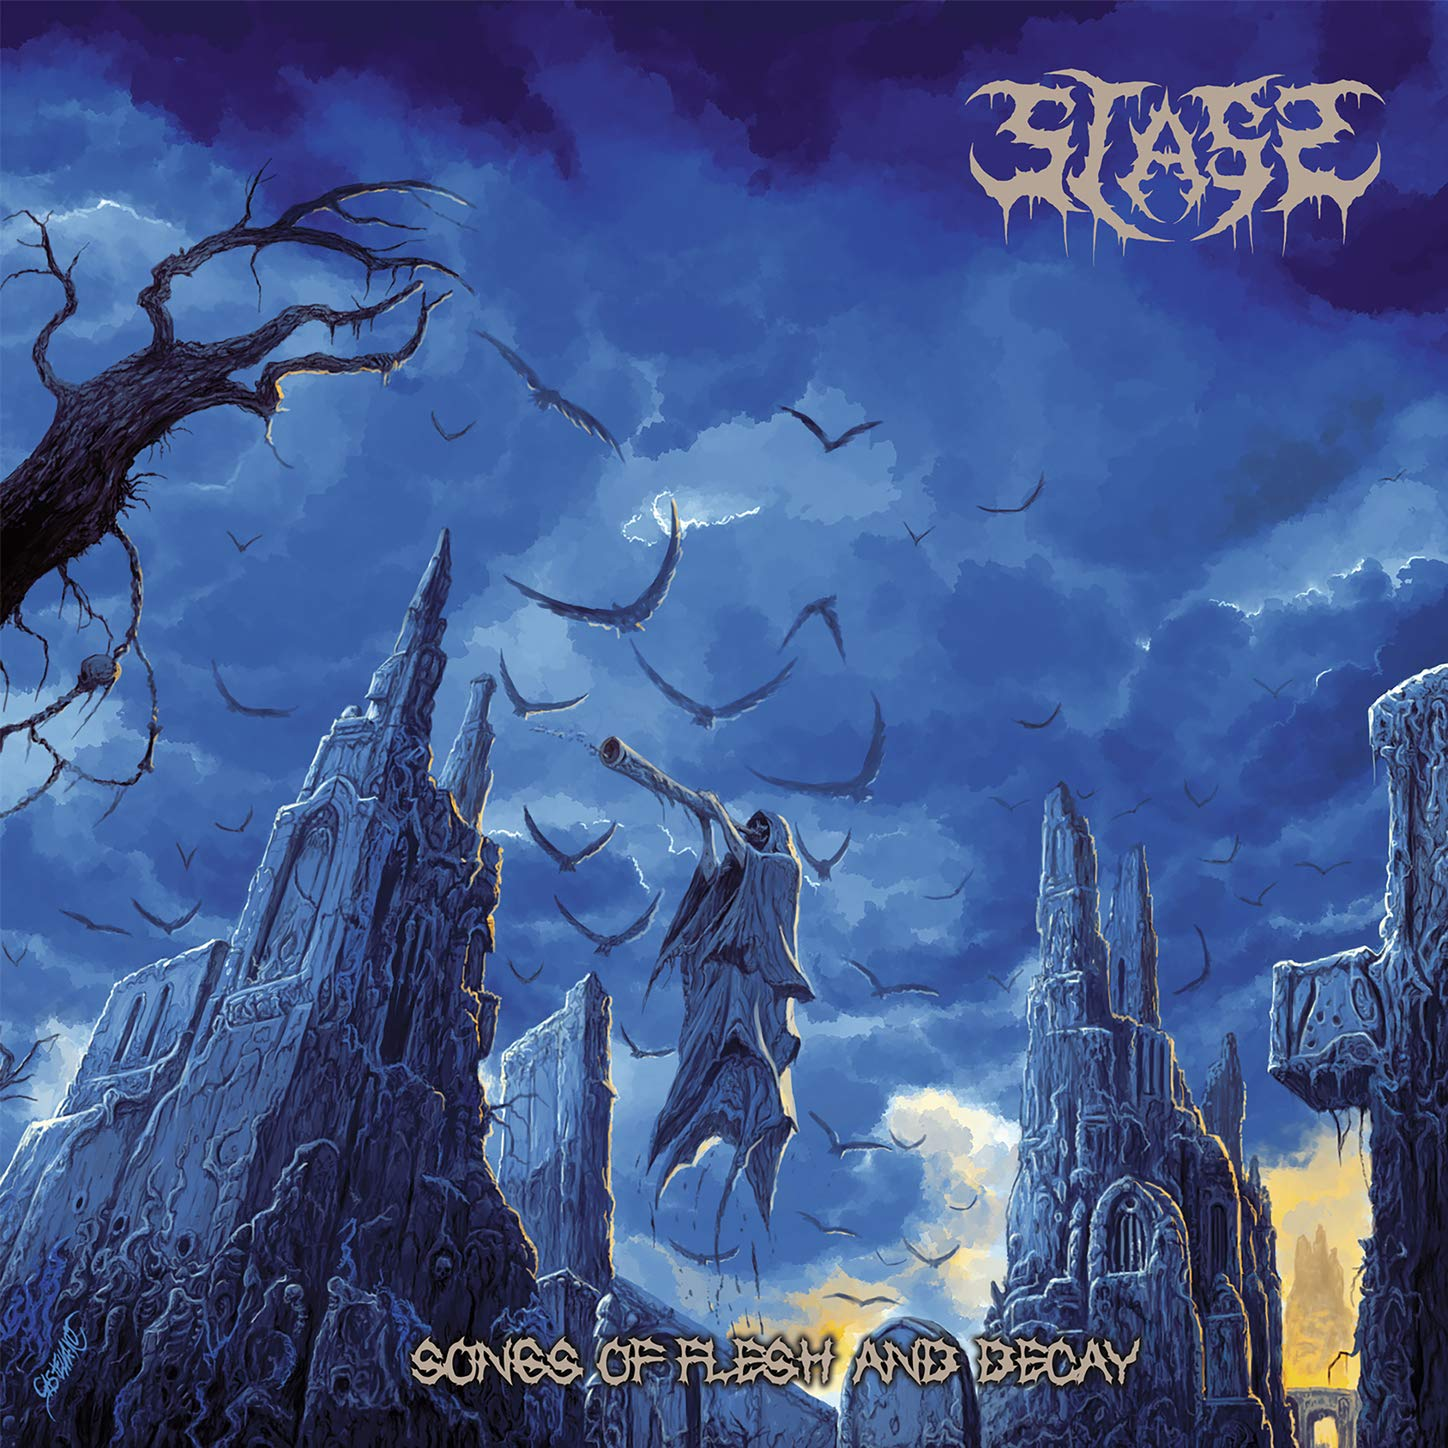 Stass - Songs of Flesh and Decay (2021) [FLAC] Download